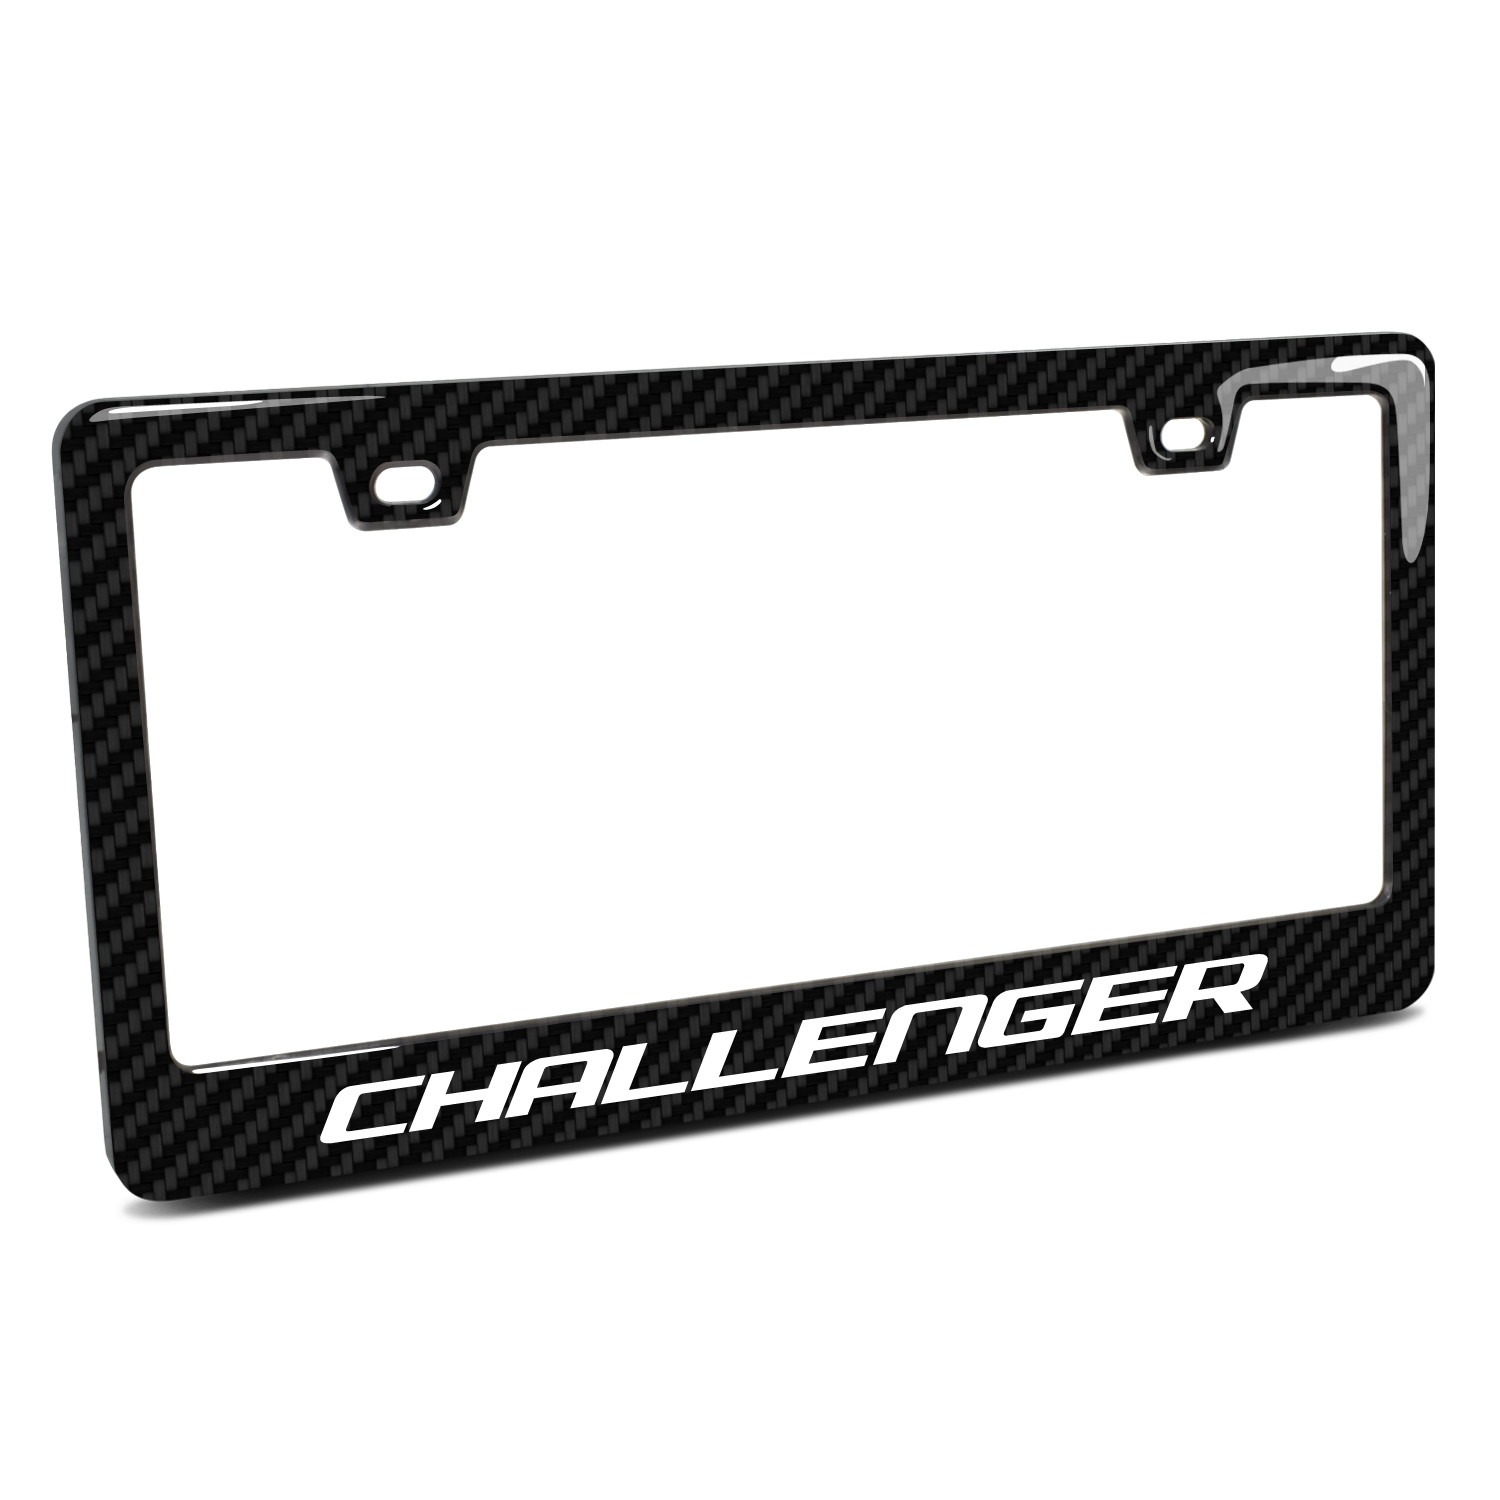 Dodge Challenger Black Real 3K Carbon Fiber Finish ABS Plastic License Plate Frame